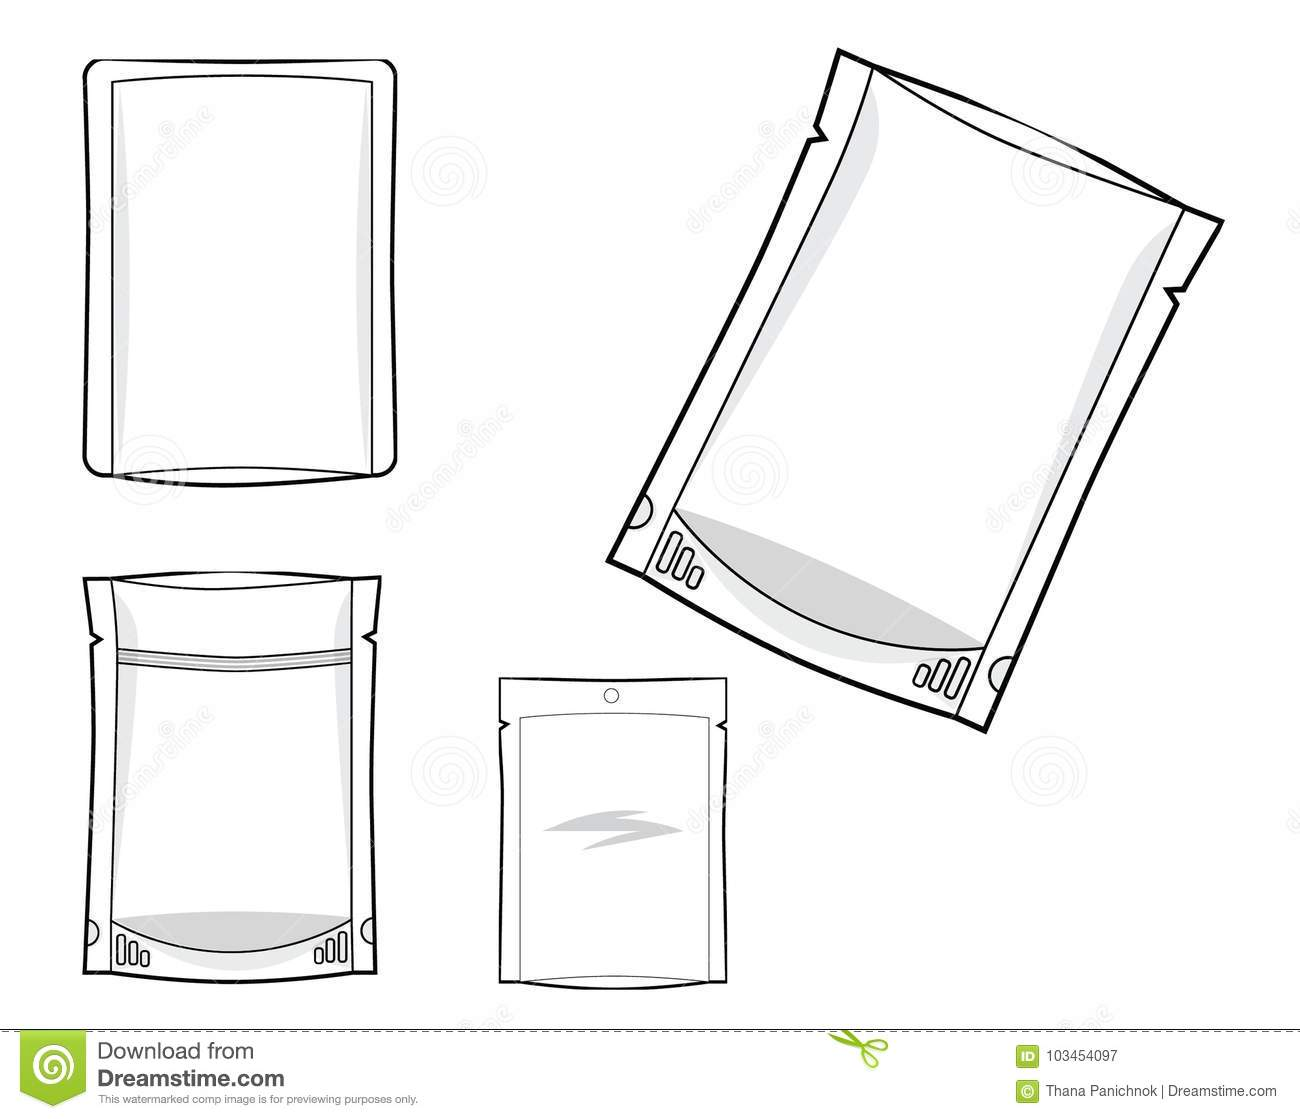 Flexible Packaging Bag 3 Side Seal And Standing Pouch Stock Vector Stading Pouce